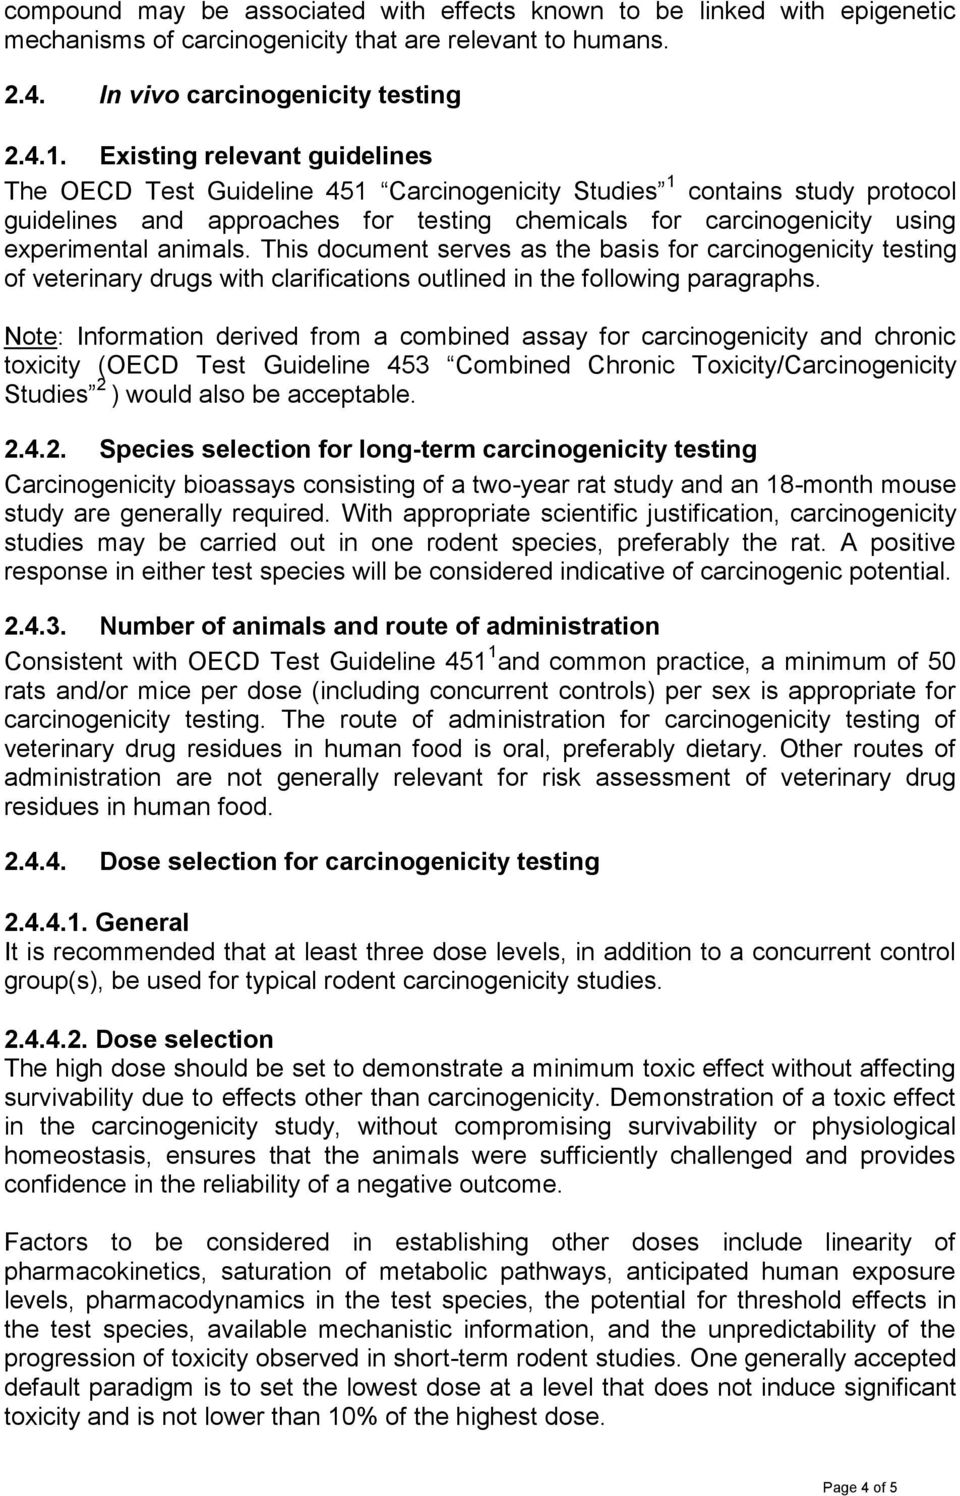 animals. This document serves as the basis for carcinogenicity testing of veterinary drugs with clarifications outlined in the following paragraphs.